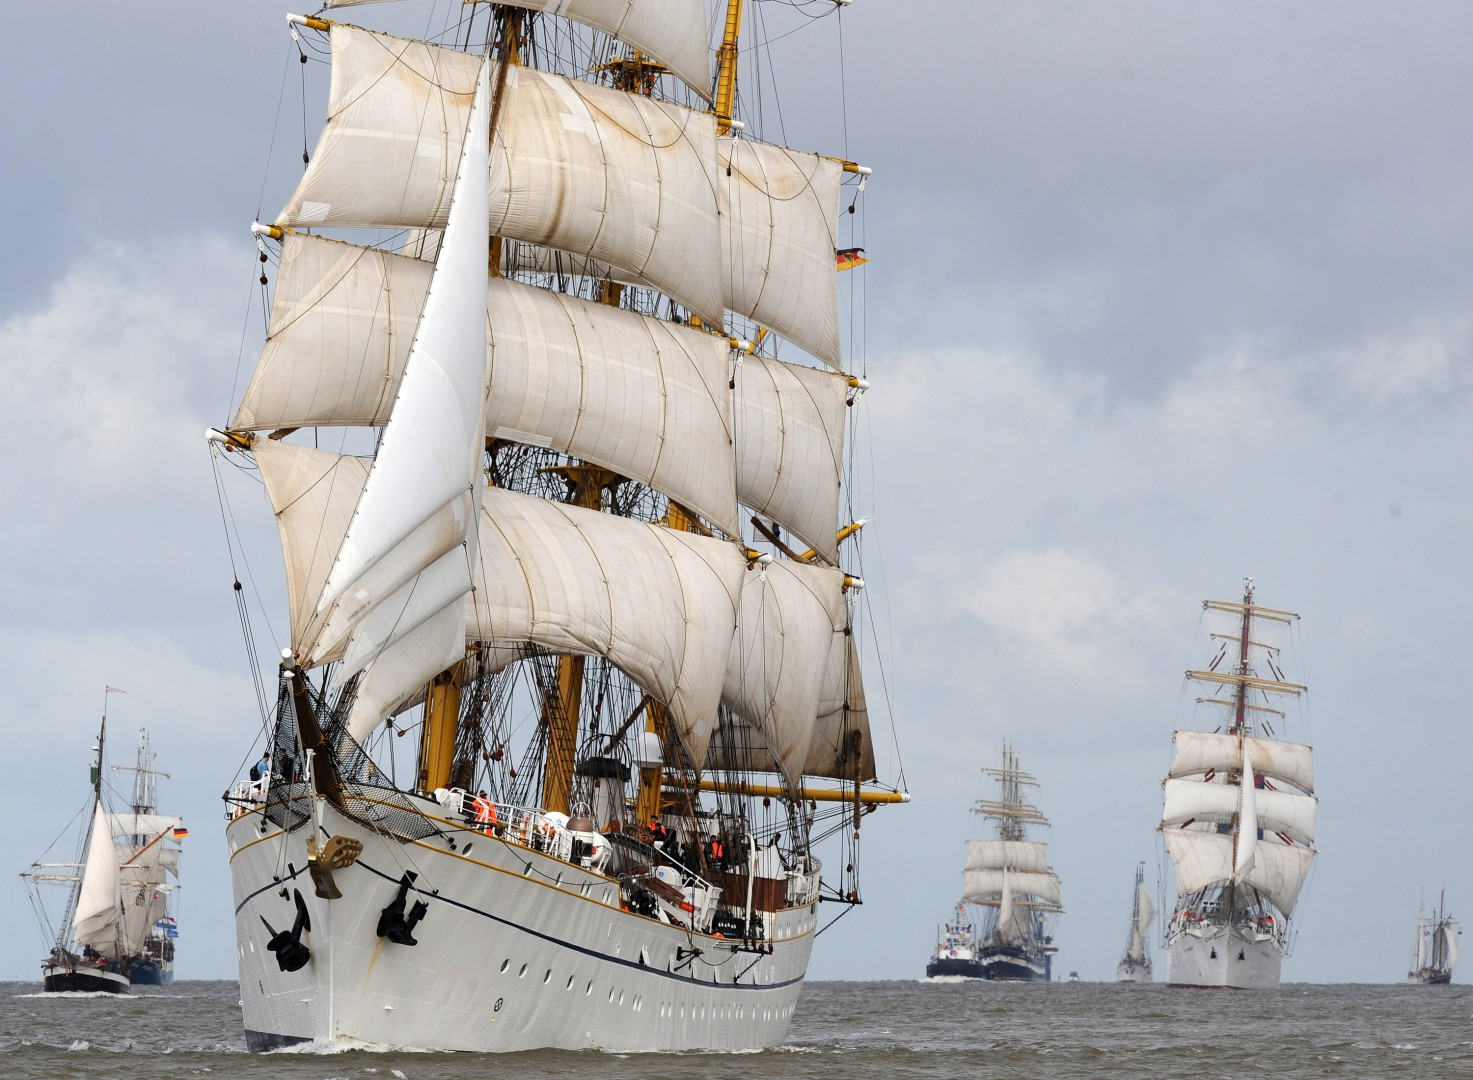 The tall ship 'Gorch Fock' (2-L) of the German Navy, the Russian 'Kruzenstern' (3-L, black hulk), the Russian 'Mir' (4-L) and the Polish 'Dar Mlodzezy' (5-L)of the maritime University in Gdynia meet during the Windjammer festival 'Sail 2010' in Bremerhaven, Germany, 25 August 2010. More than 200 ships from 15 nations participate in the maritime festival (25-29 August 2010). Around one million visitors are expected to come to the sailing encounter in Bremerhaven. Photo:†Ingo Wagner